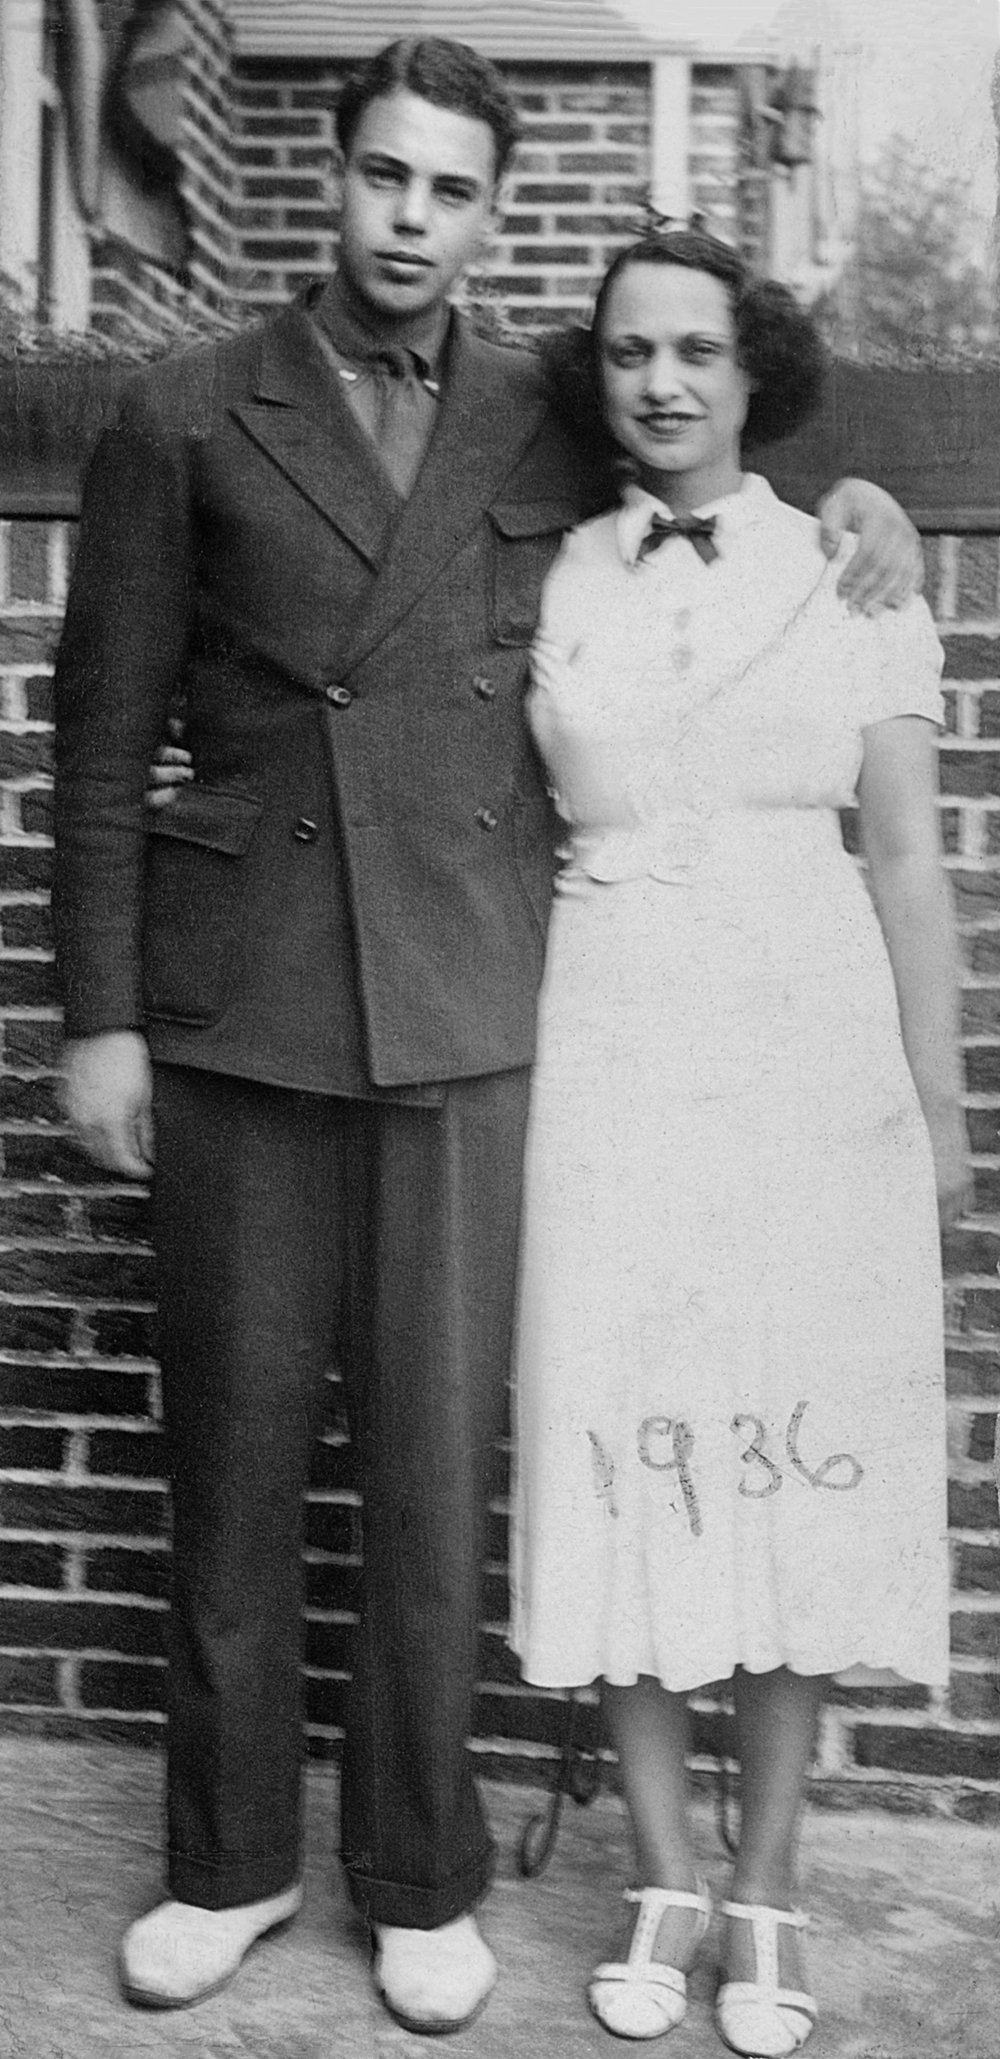 Doug and Kathryn, 1936